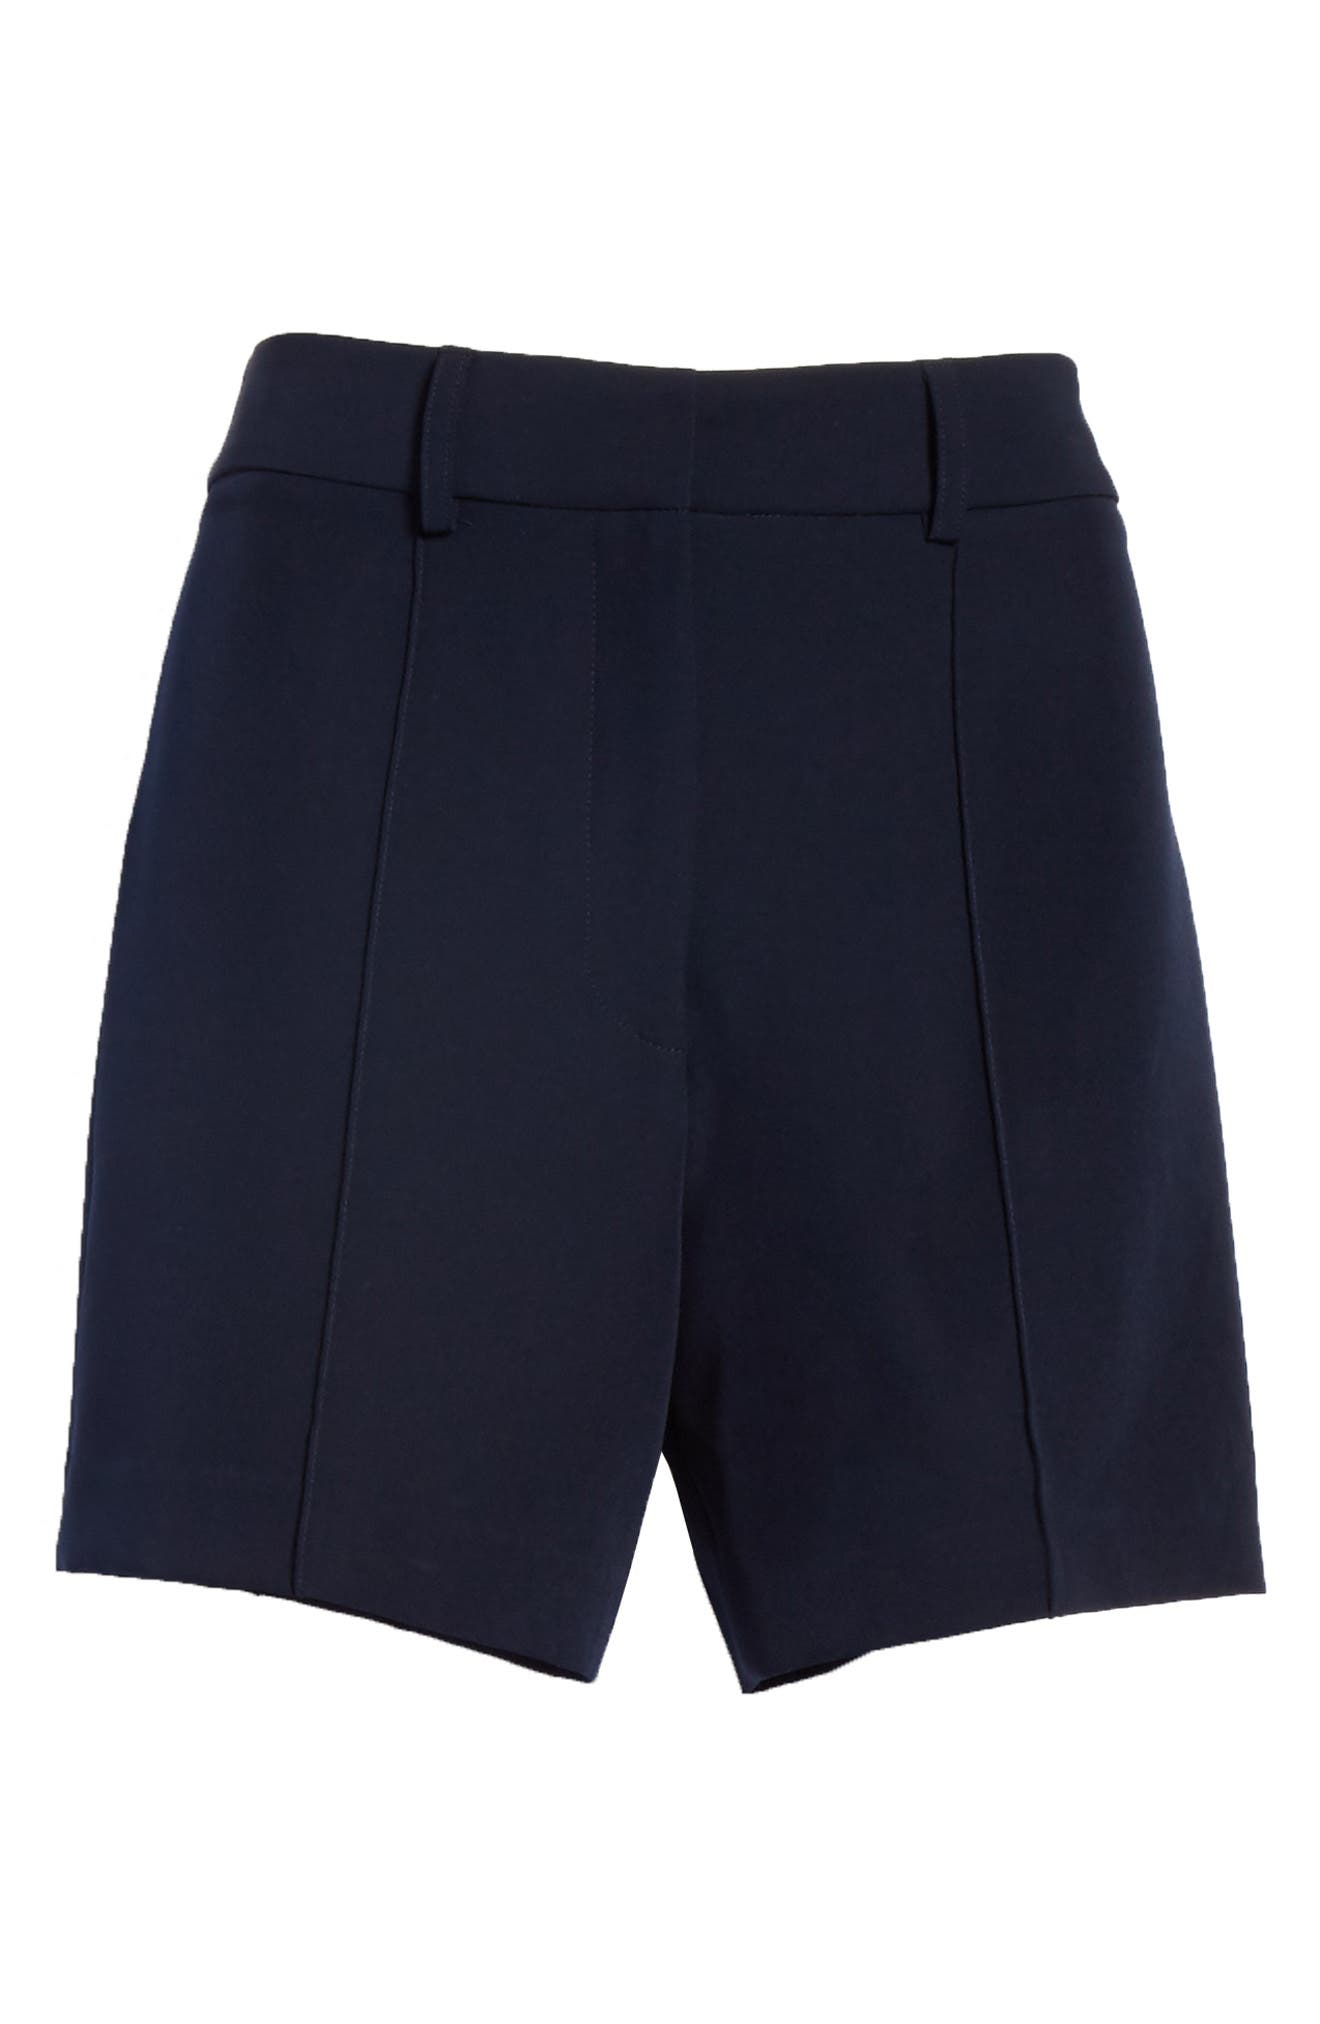 Hayden Trouser Shorts,                             Alternate thumbnail 6, color,                             410